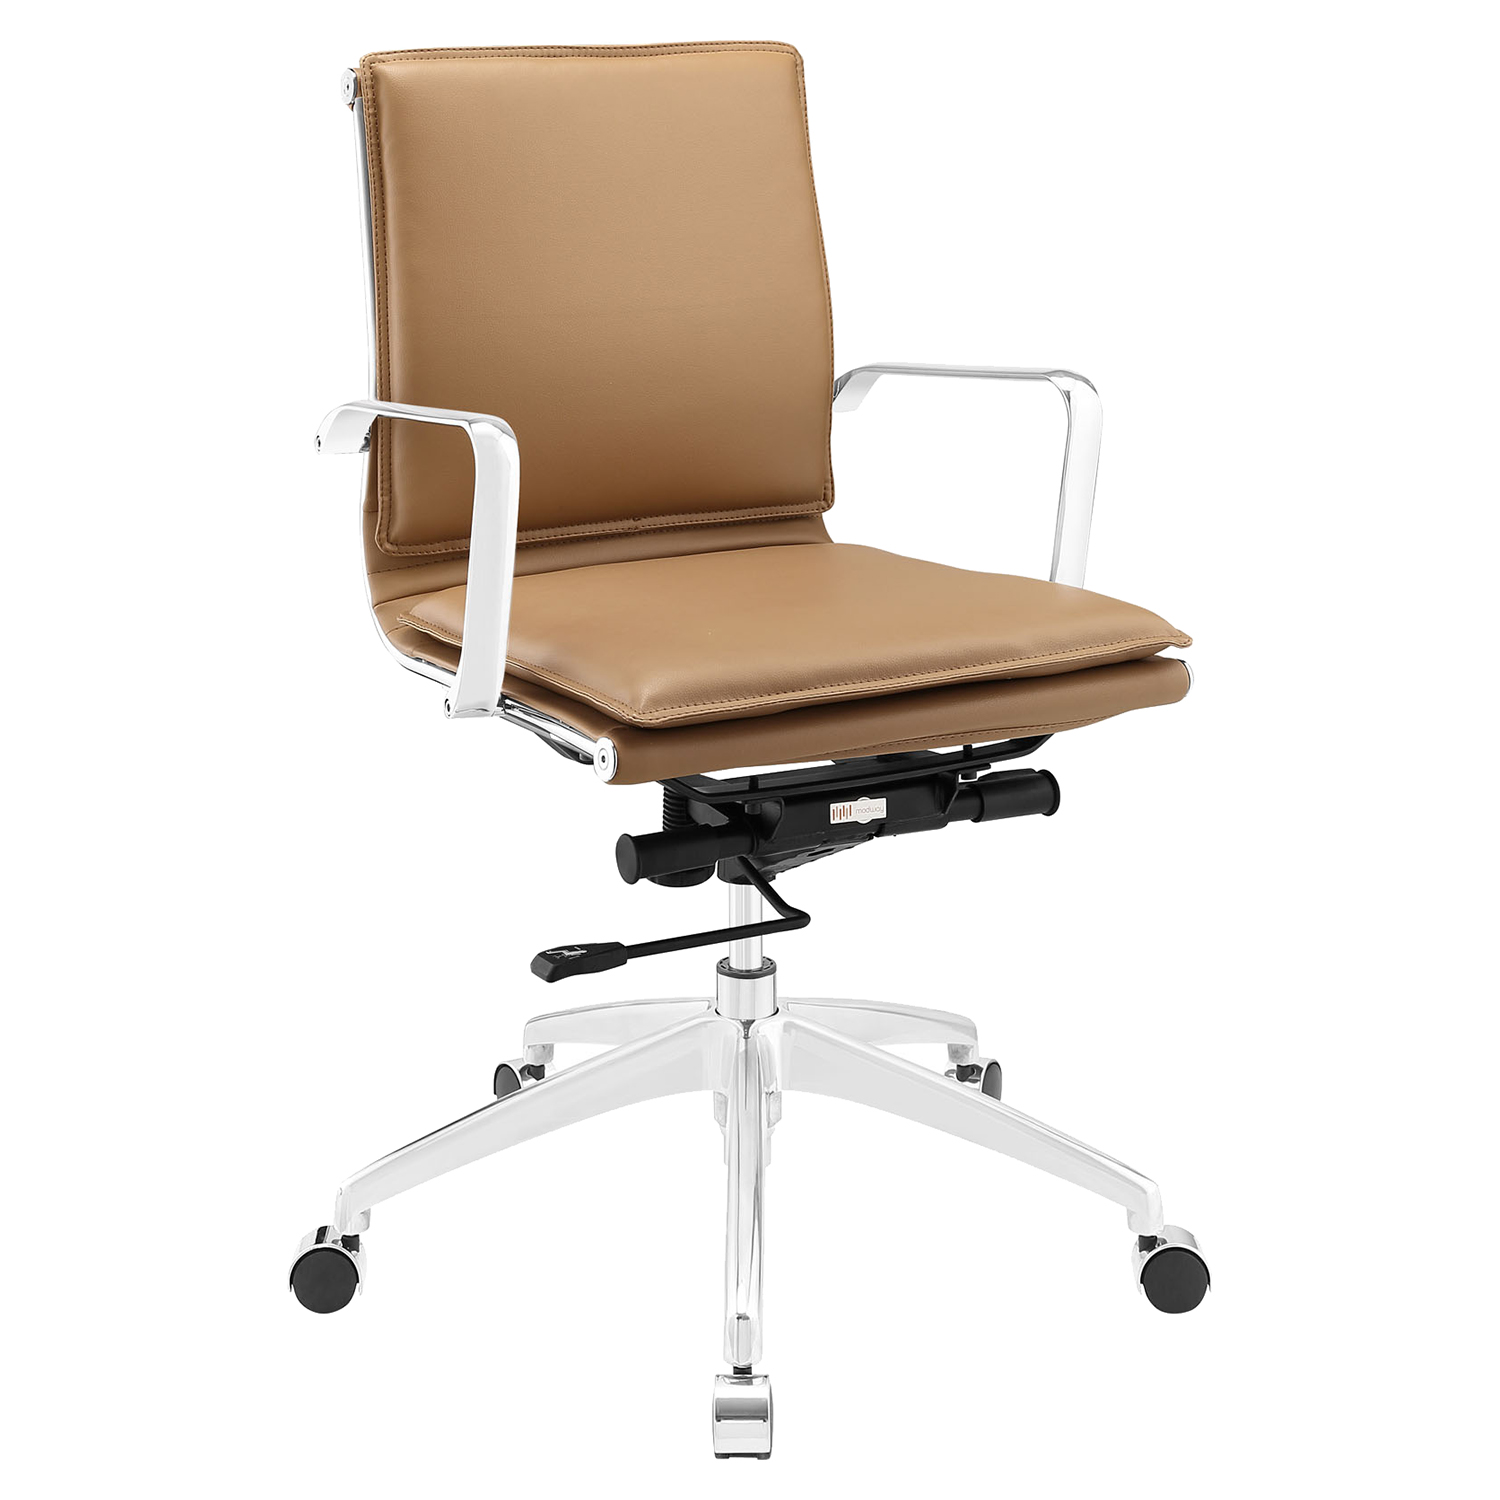 Sage Office Chair - Mid Back, Adjustable Height, Swivel, Armrest - EEI-1530